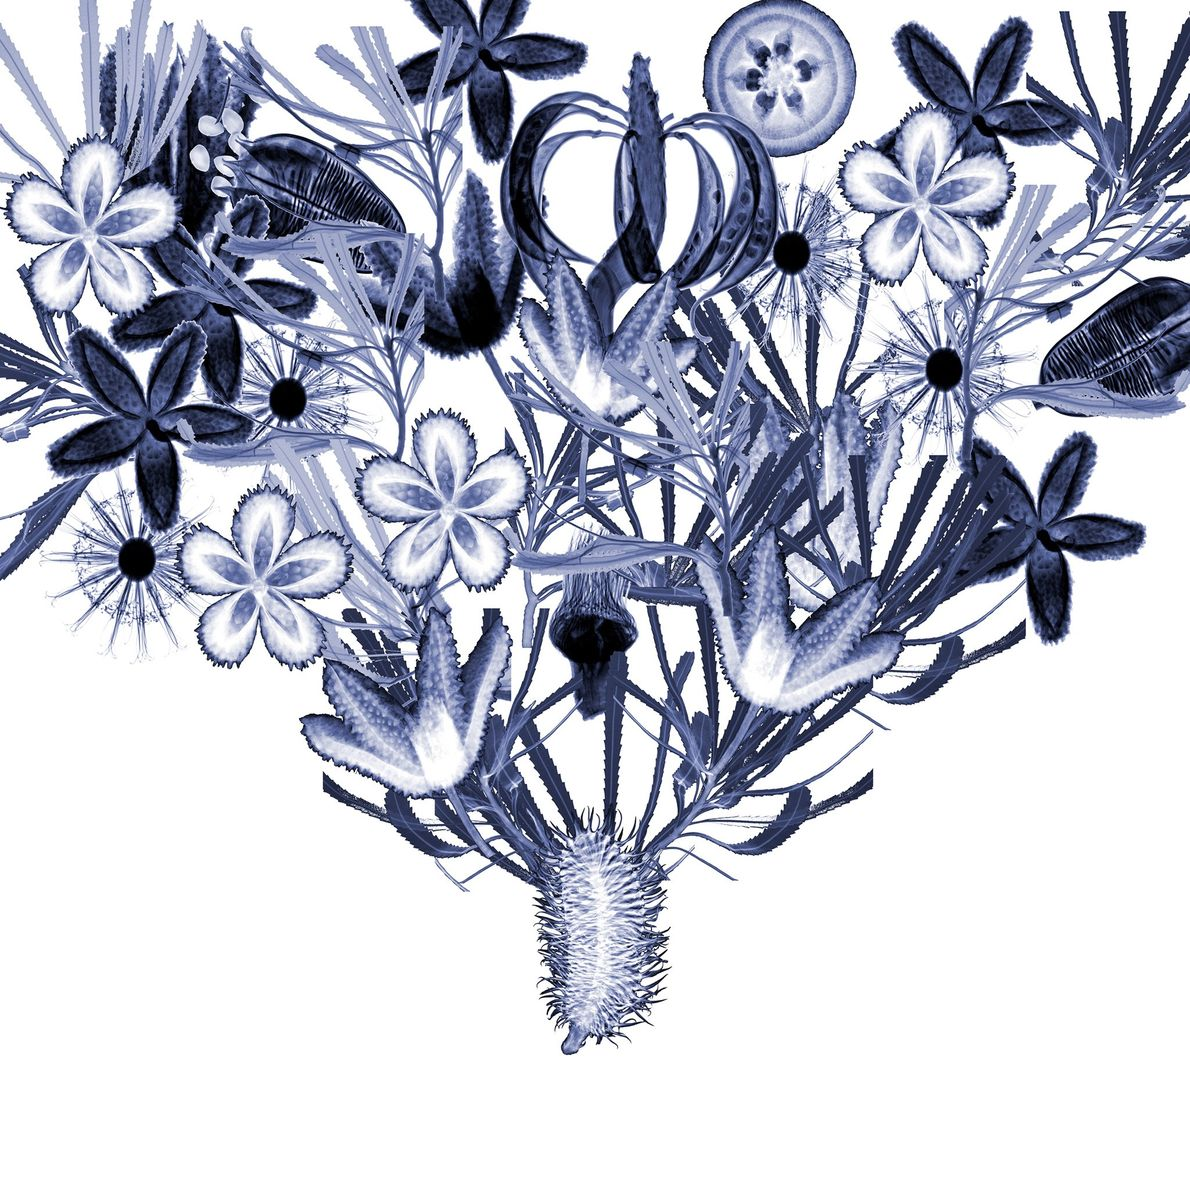 This collage of x-rays showcases a variety of plants that are unique to Australia, including banksia ...